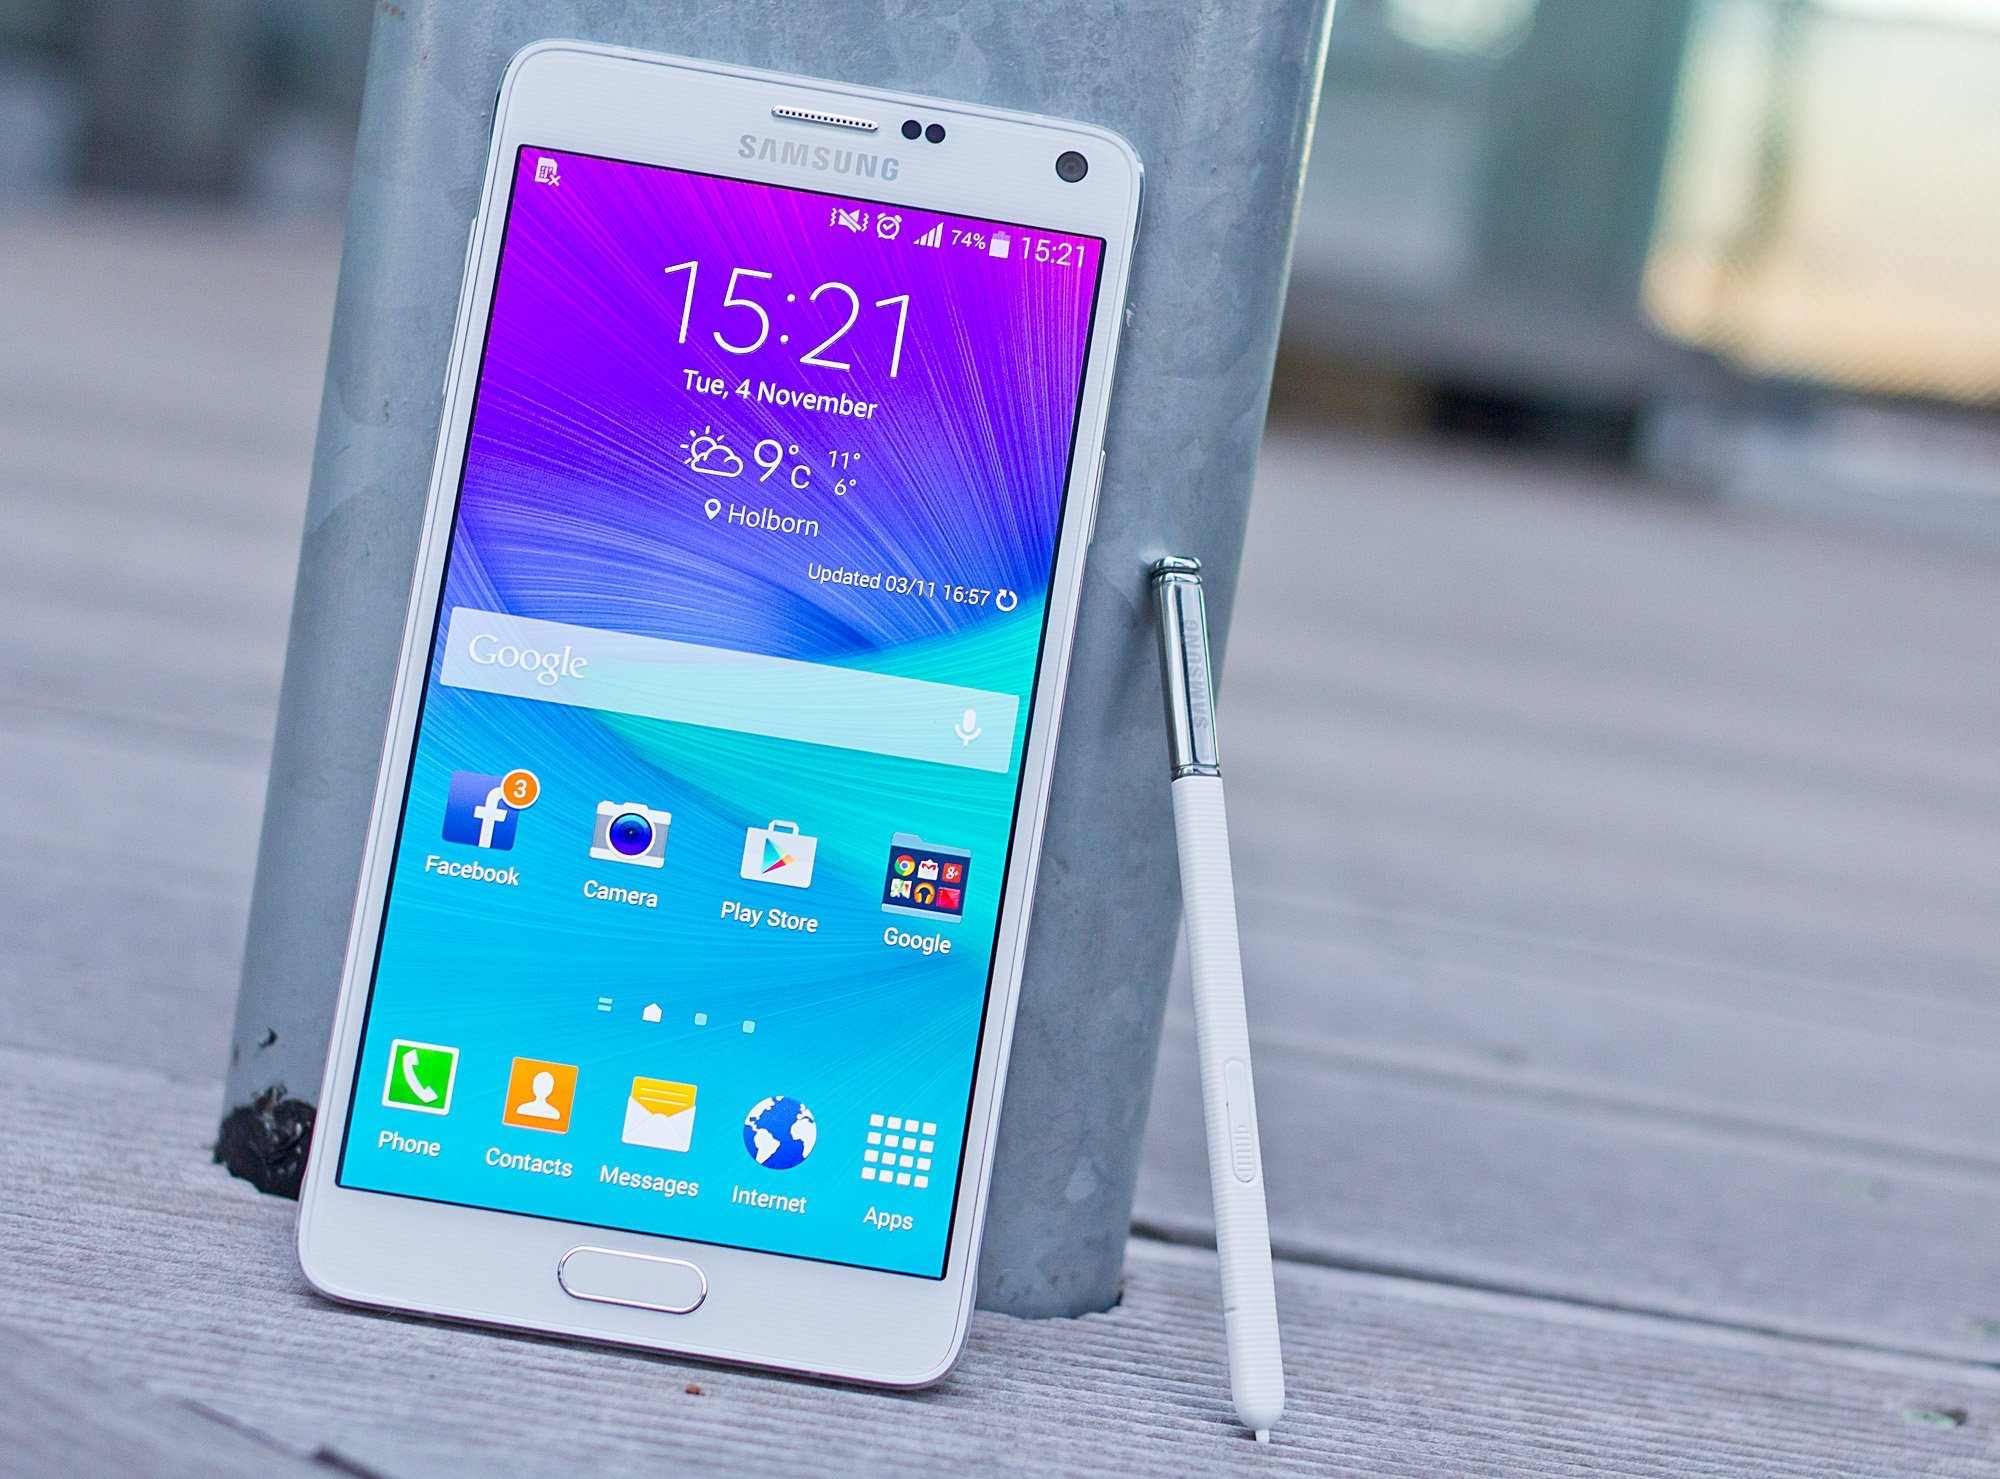 Top 10 Smartphones You Can Buy In 2015